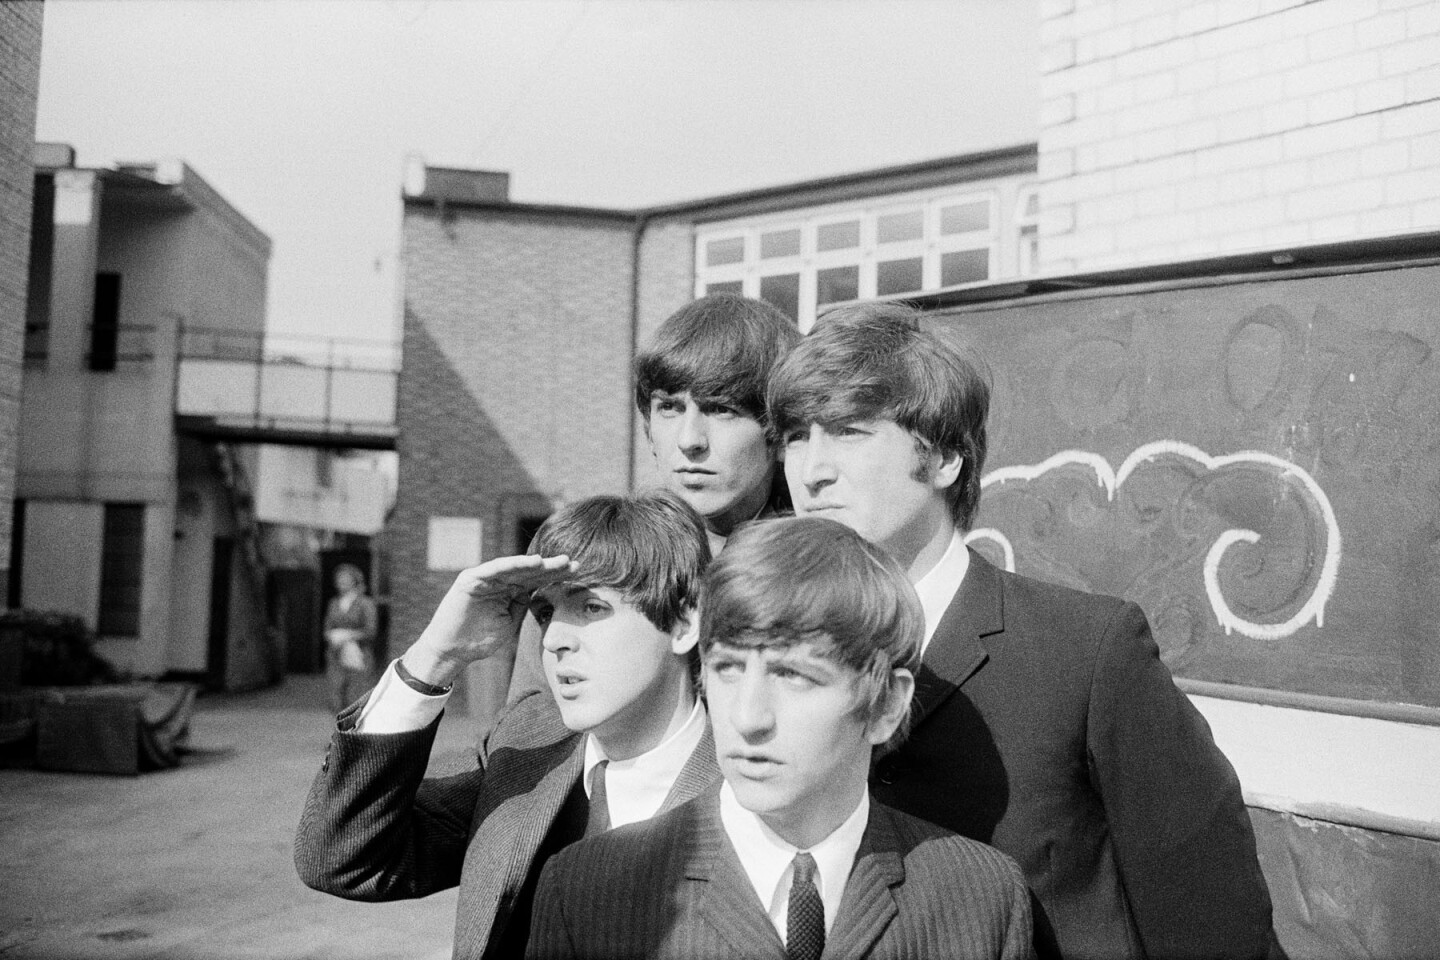 A collection of early photographs of the Beatles taken by Astrid Kirchherr will go on display Leica Gallery from Sept. 7 to Oct. 19.